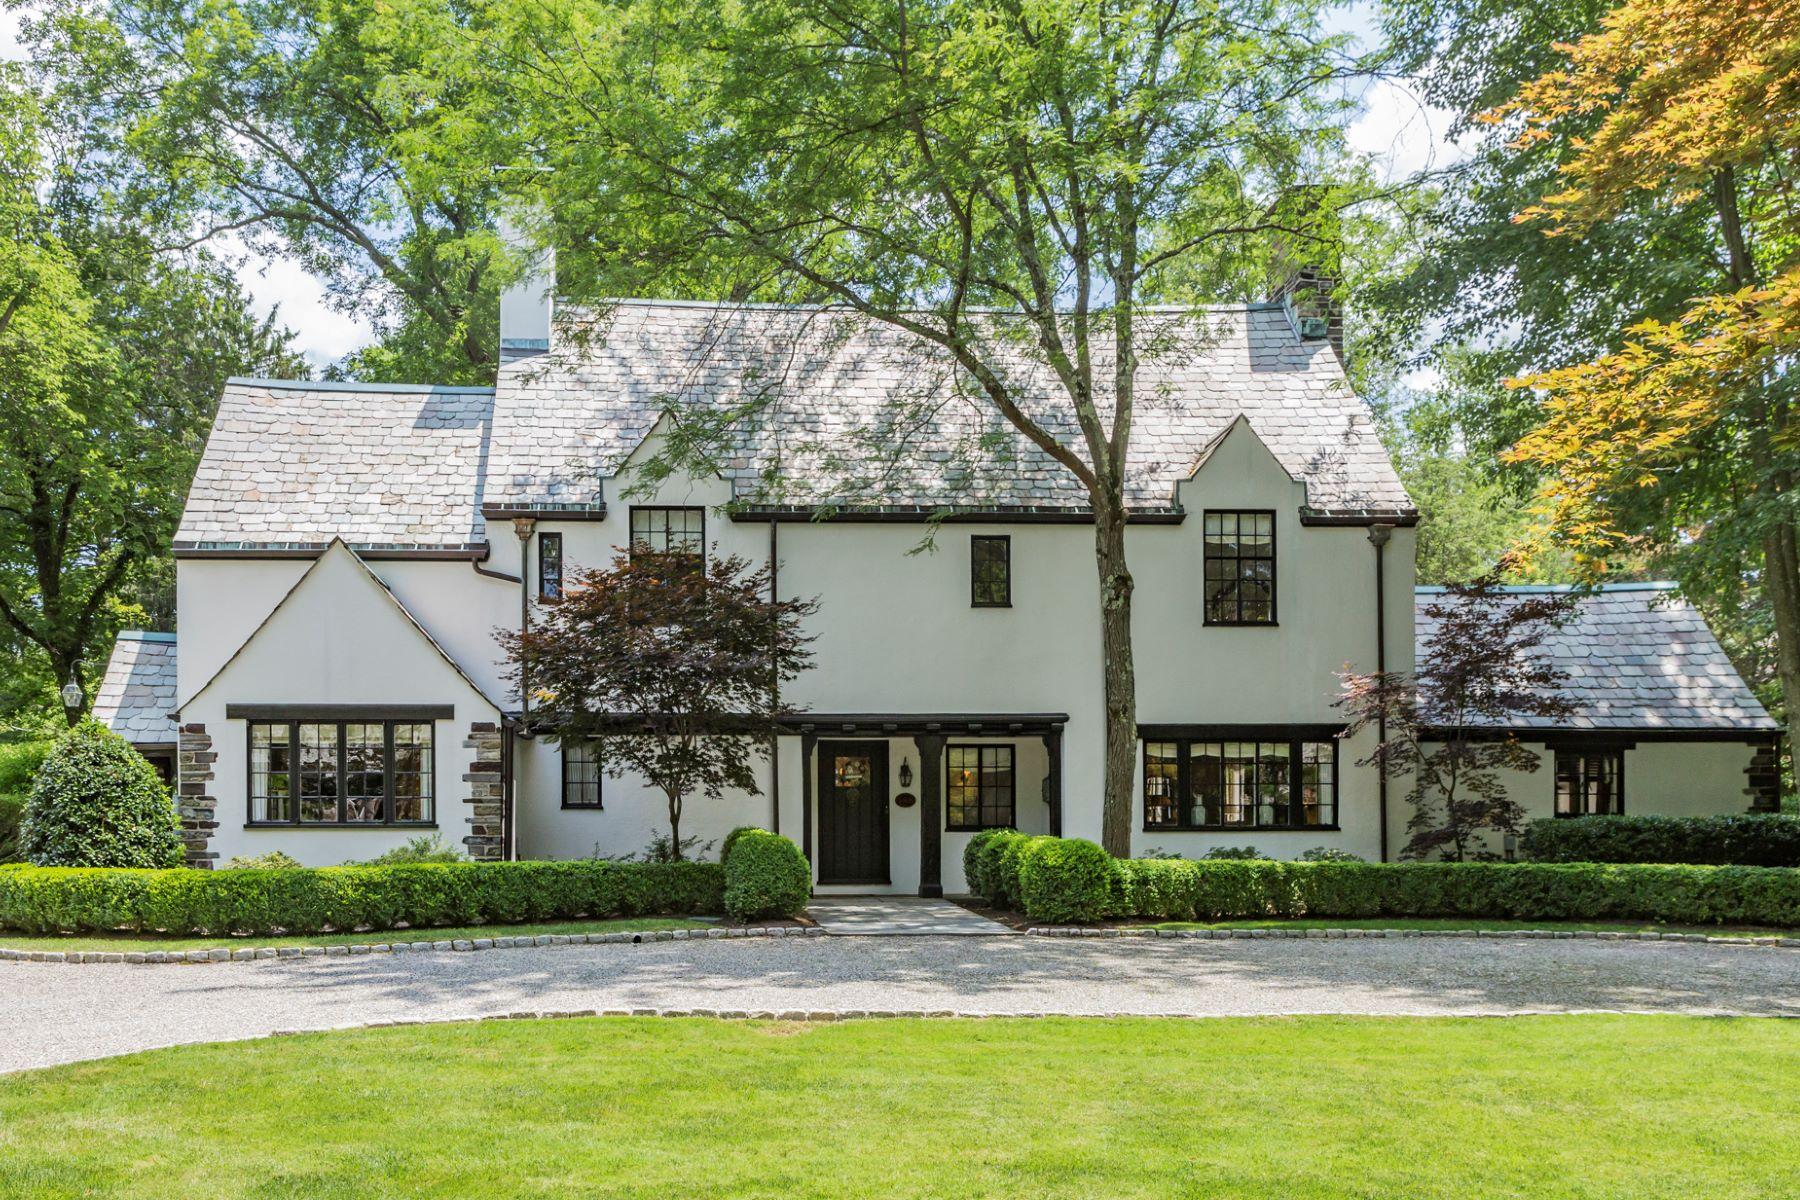 Casa Unifamiliar por un Venta en It Doesn't Get Much Better 148 Hodge Road Princeton, Nueva Jersey 08540 Estados UnidosEn/Alrededor: Princeton